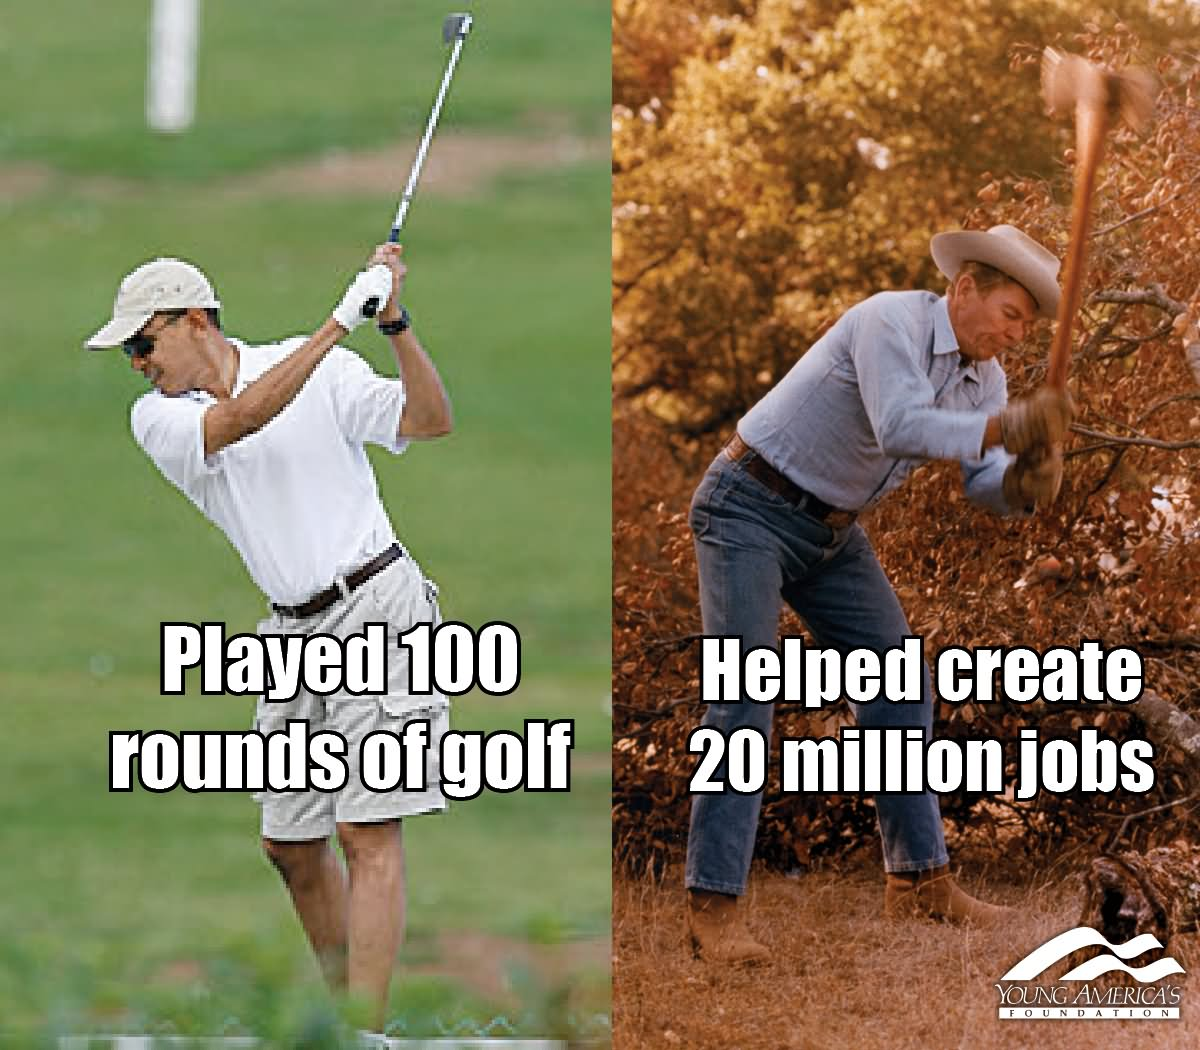 Played 100 Rounds Of Golf Funny Meme Image